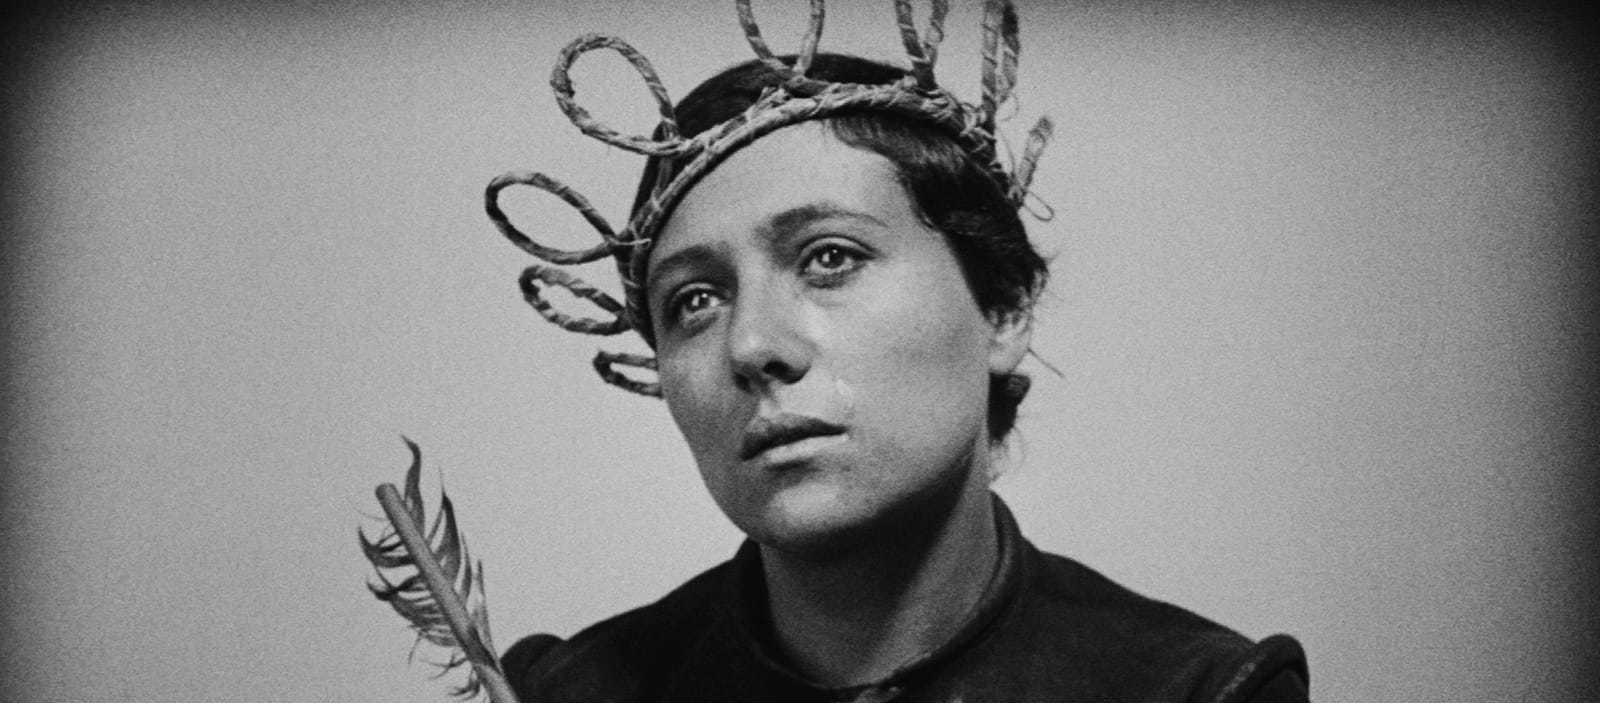 97. The Passion of Joan of Arc -